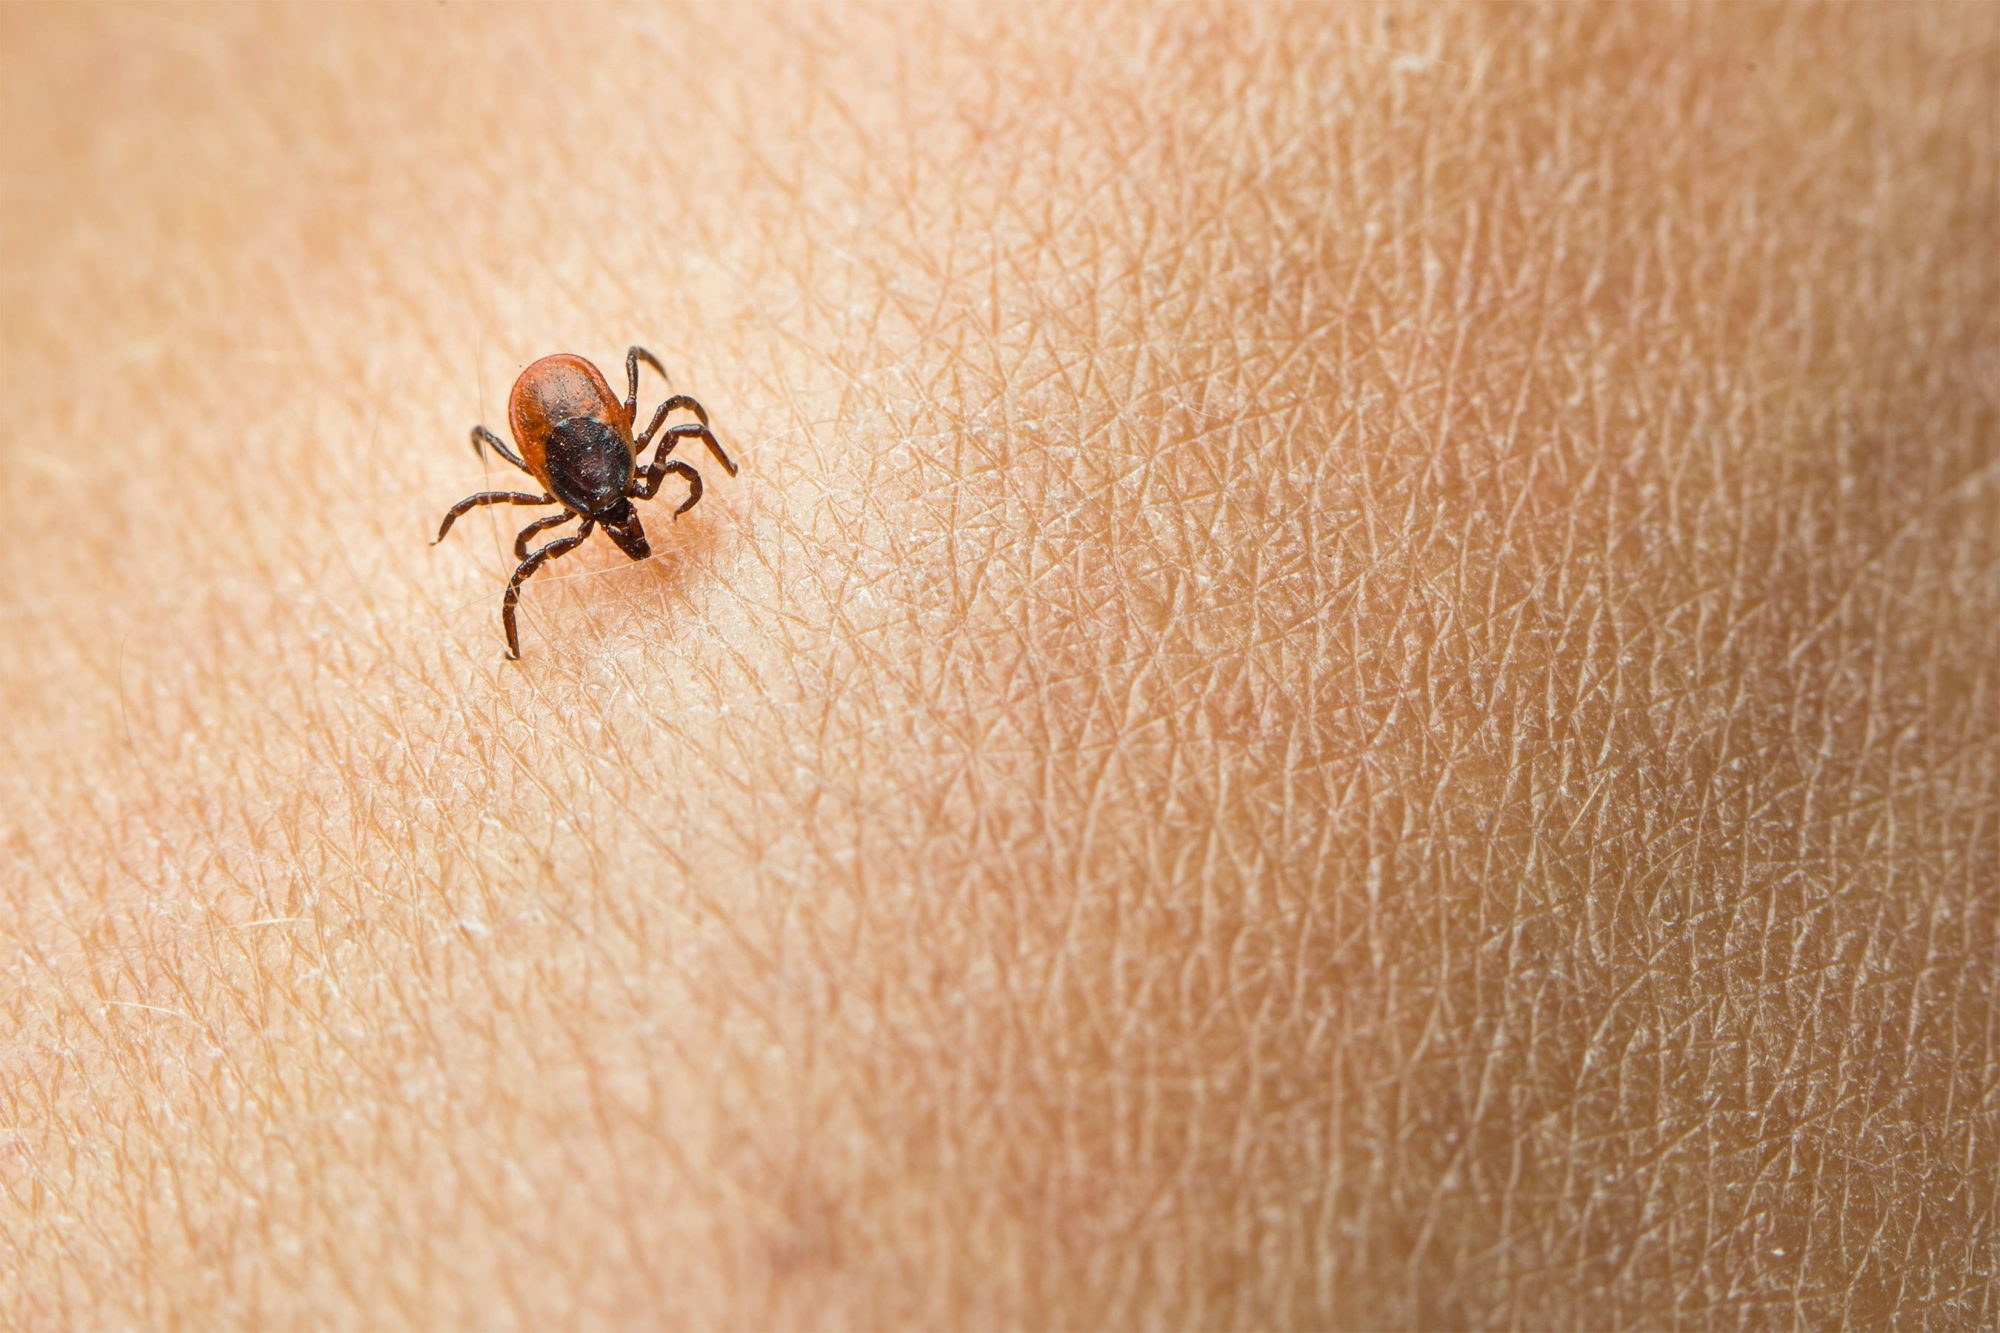 Kentucky Man With Eye 'Irritation' Learns He Has a Tick Stuck in His Eye